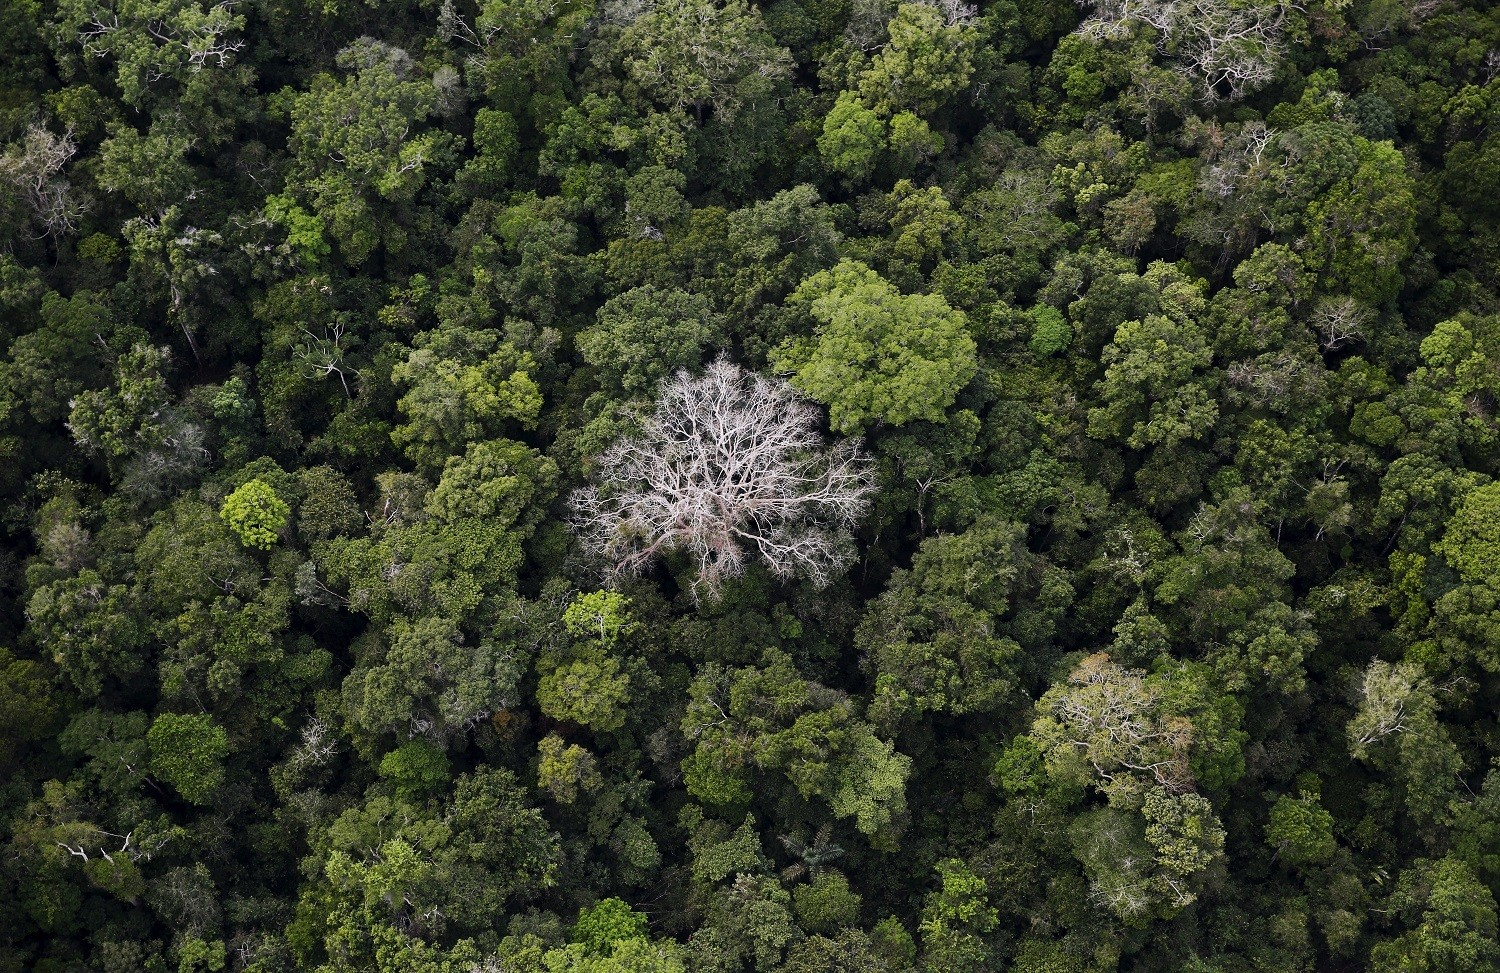 "An aerial view shows the Amazon rainforest at the Bom Futuro National Forest near Rio Pardo in Porto Velho, Rondonia State, Brazil, September 3, 2015. The town of Rio Pardo, a settlement of about 4,000 people in the Amazon rainforest, rises where only jungle stood less than a quarter of a century ago. Loggers first cleared the forest followed by ranchers and farmers, then small merchants and prospectors. Brazil's government has stated a goal of eliminating illegal deforestation, but enforcing the law in remote corners like Rio Pardo is far from easy. REUTERS/Nacho Doce   TPX IMAGES OF THE DAYPICTURE 1 OF 40 FOR WIDER IMAGE STORY ""EARTHPRINTS: RIO PARDO"" SEARCH""EARTHPRINTS PARDO"" FOR ALL IMAGES   - GF20000046394"